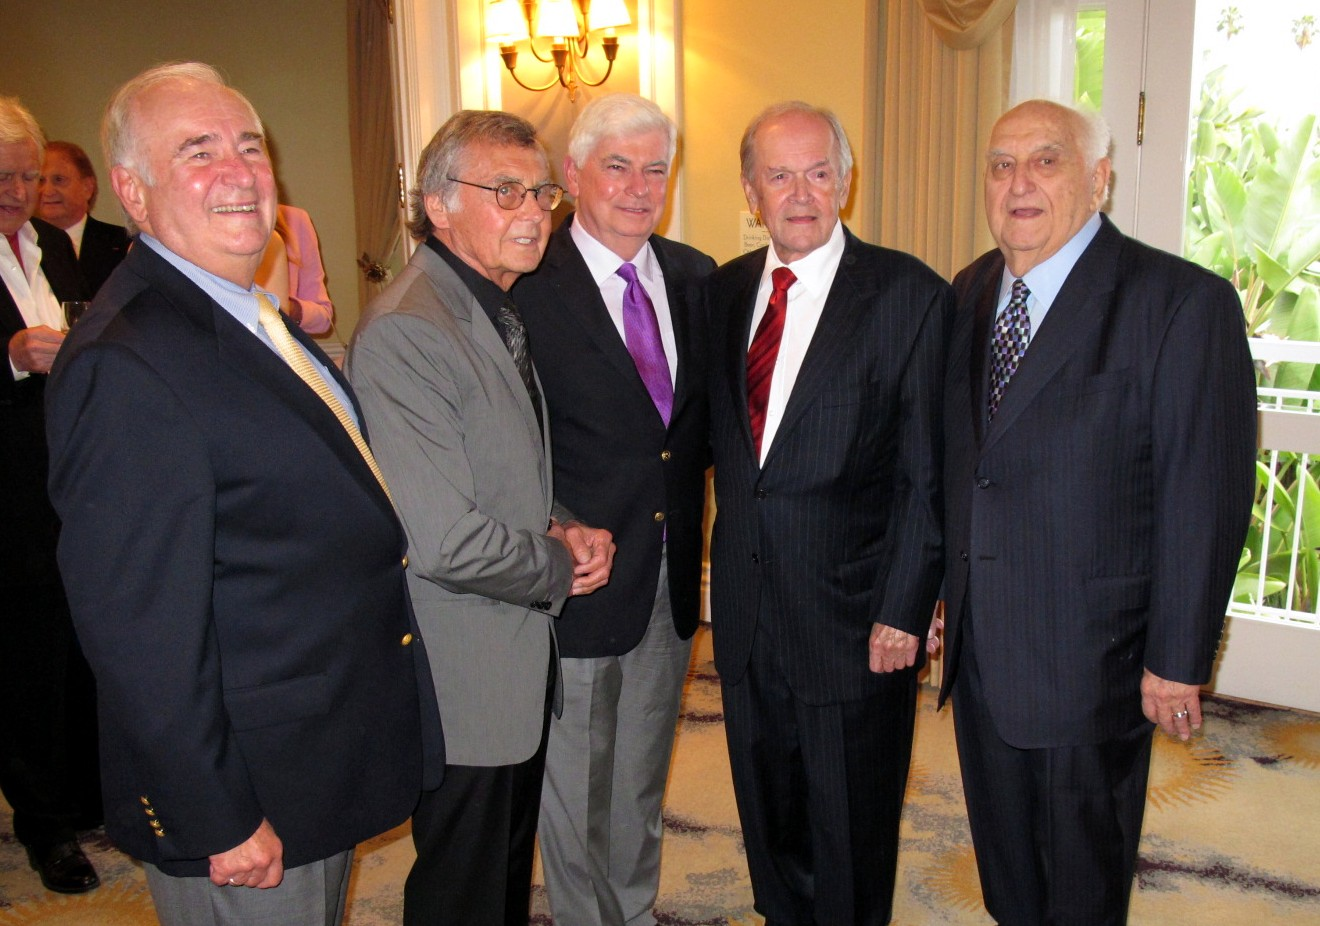 Dennis Doty, Norman Powell, Senator Christopher Dodd, Frank Price, Chuck Fries, 9TH ANNUAL AMERICAN SPIRIT AWARDS Beverly Hills Hotel